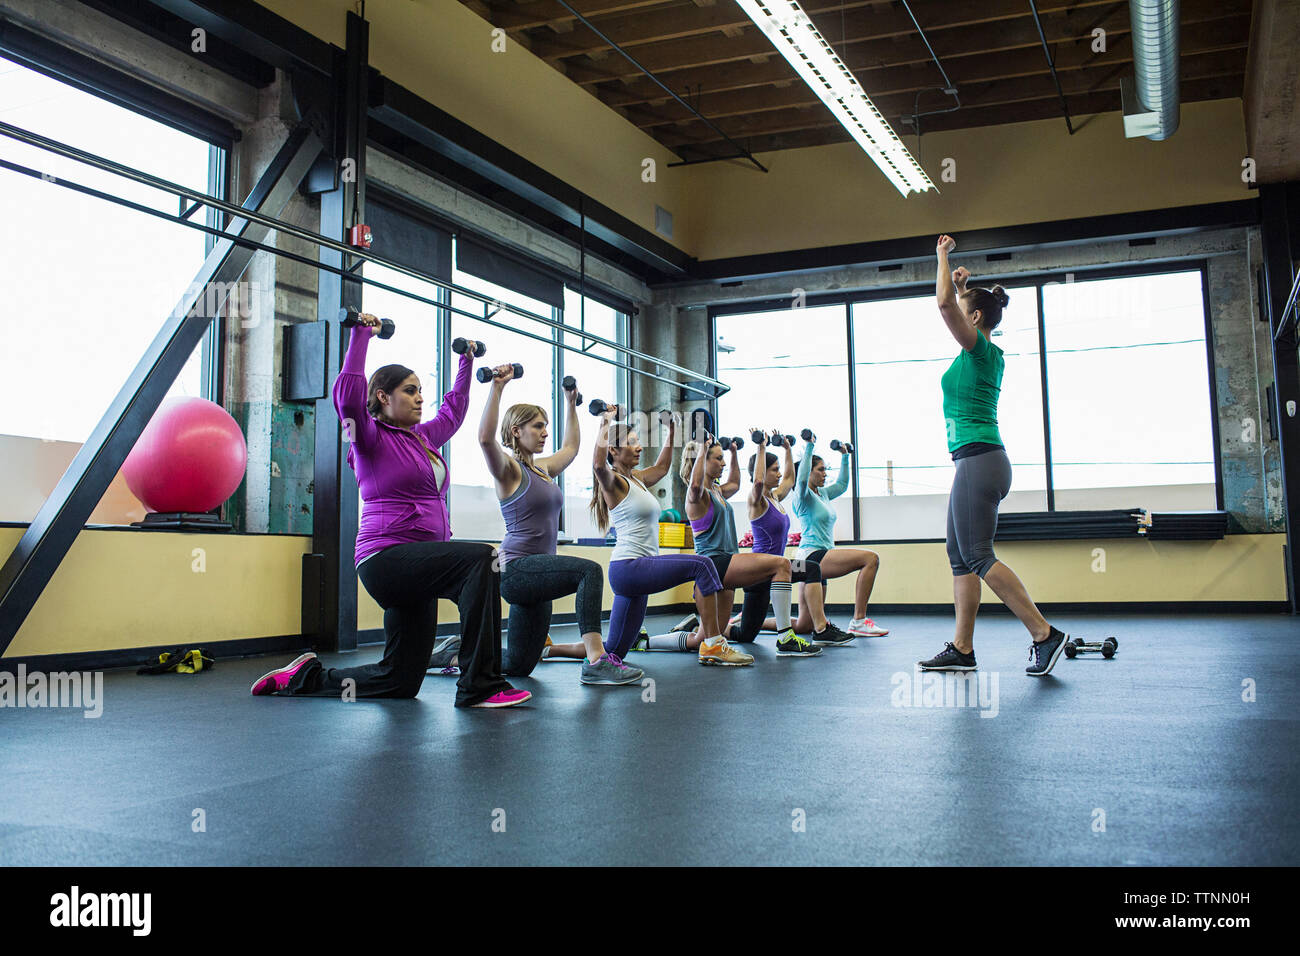 Fitness instructor guiding women in lifting dumbbells at gym - Stock Image